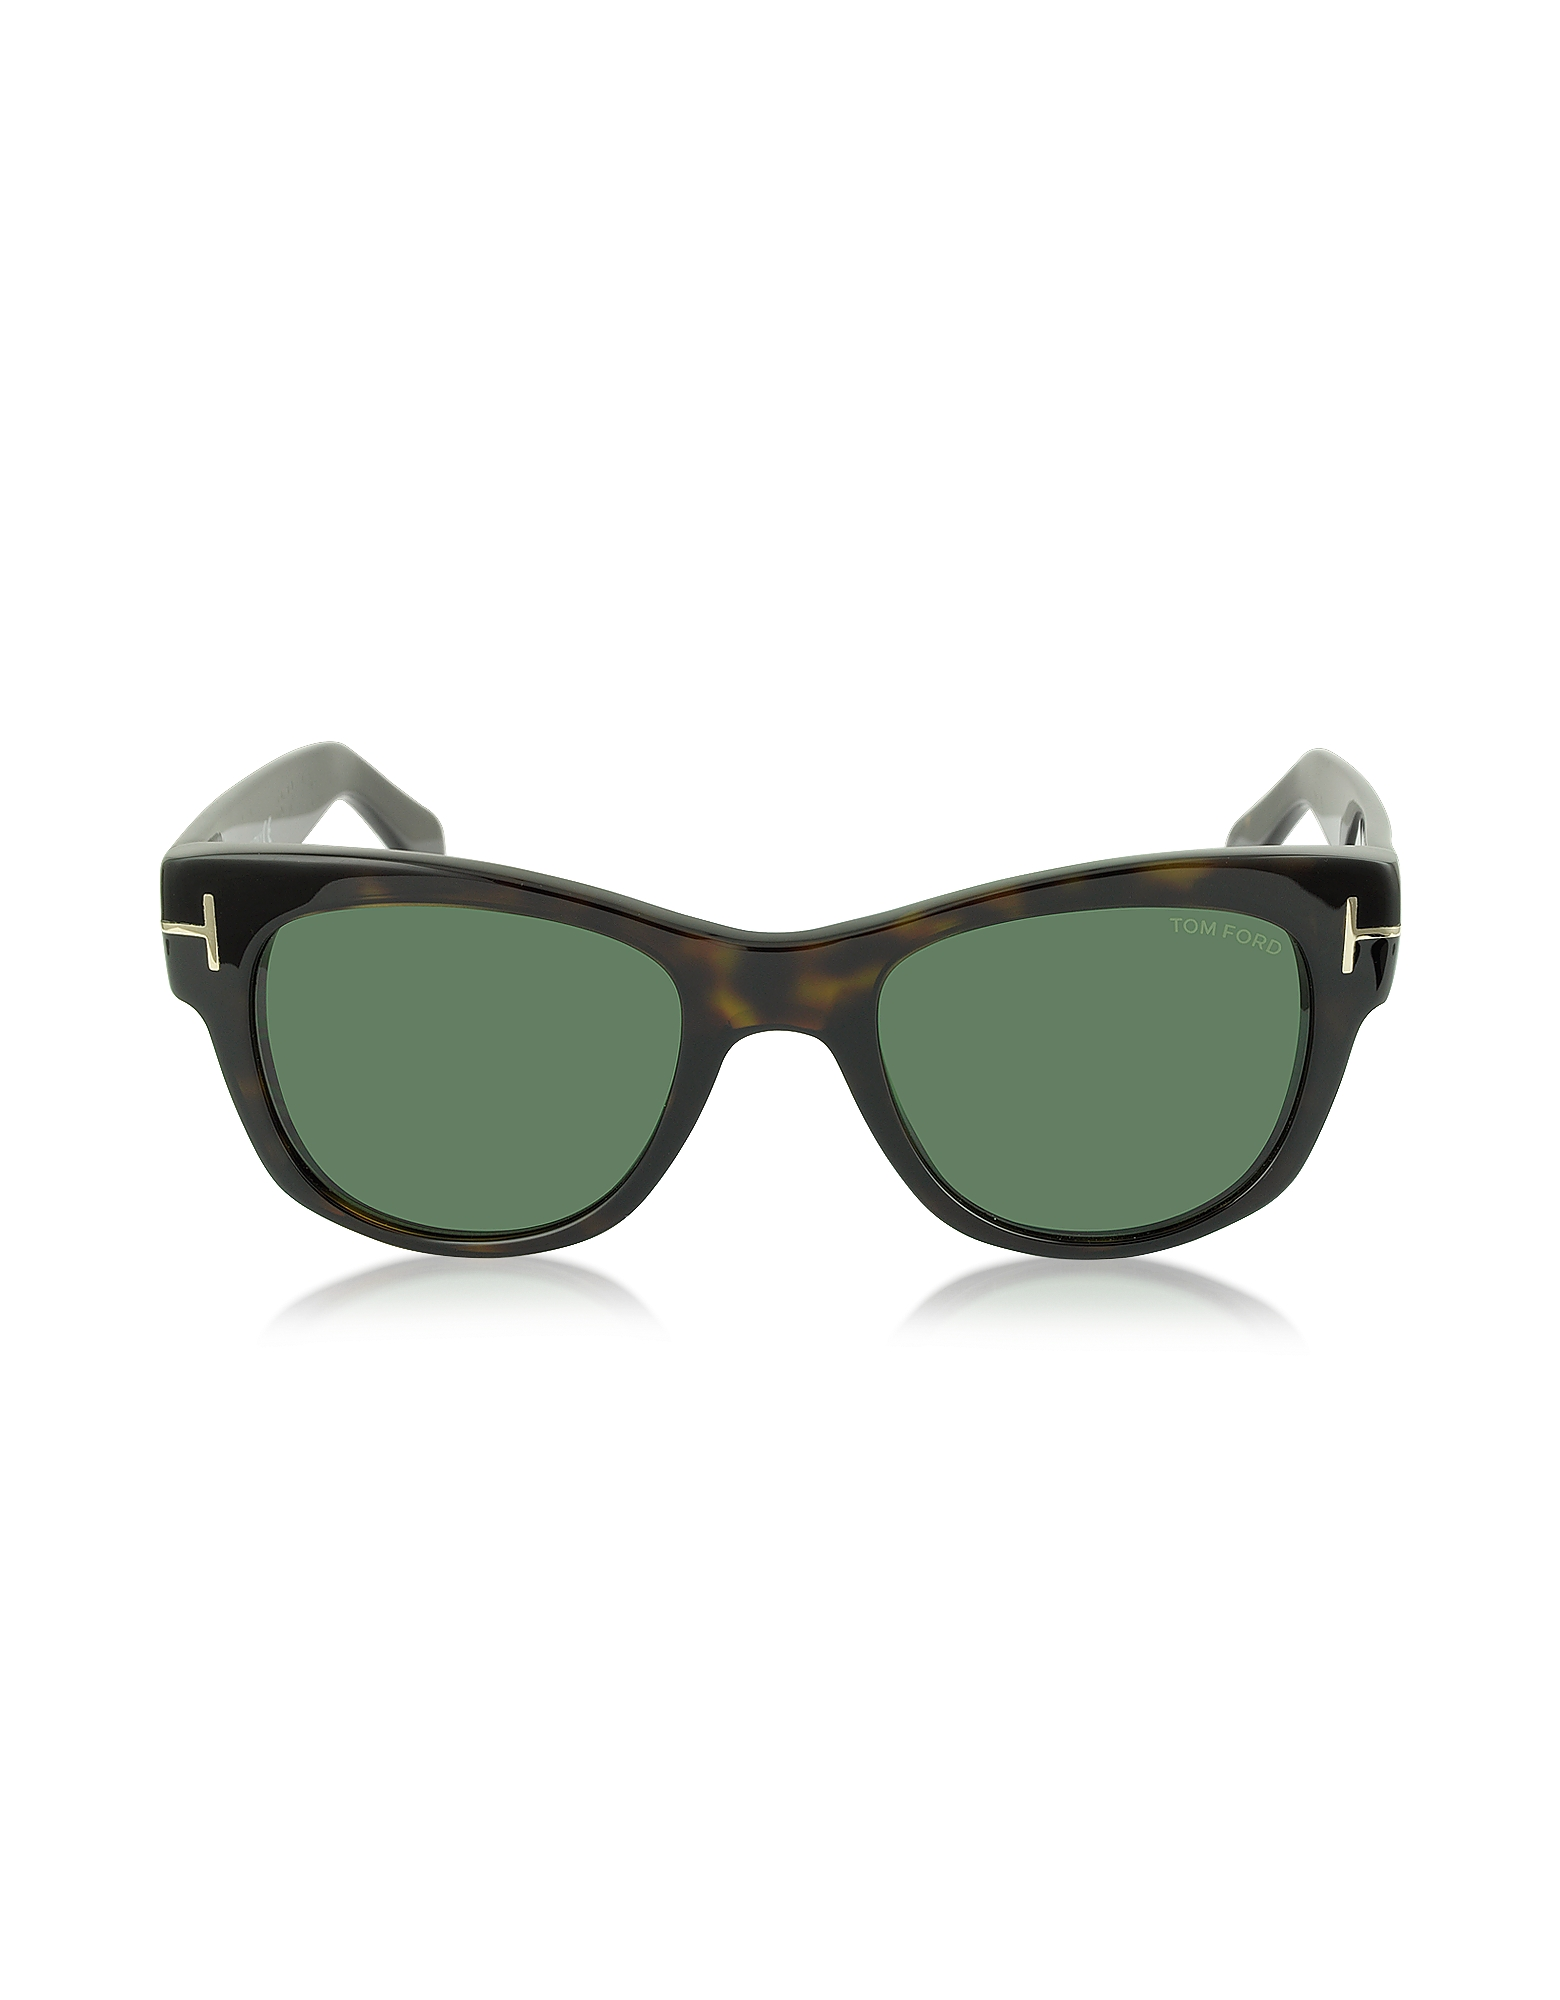 Tom Ford Sunglasses, CARY FT0058 52N Havana Acetate Sunglasses